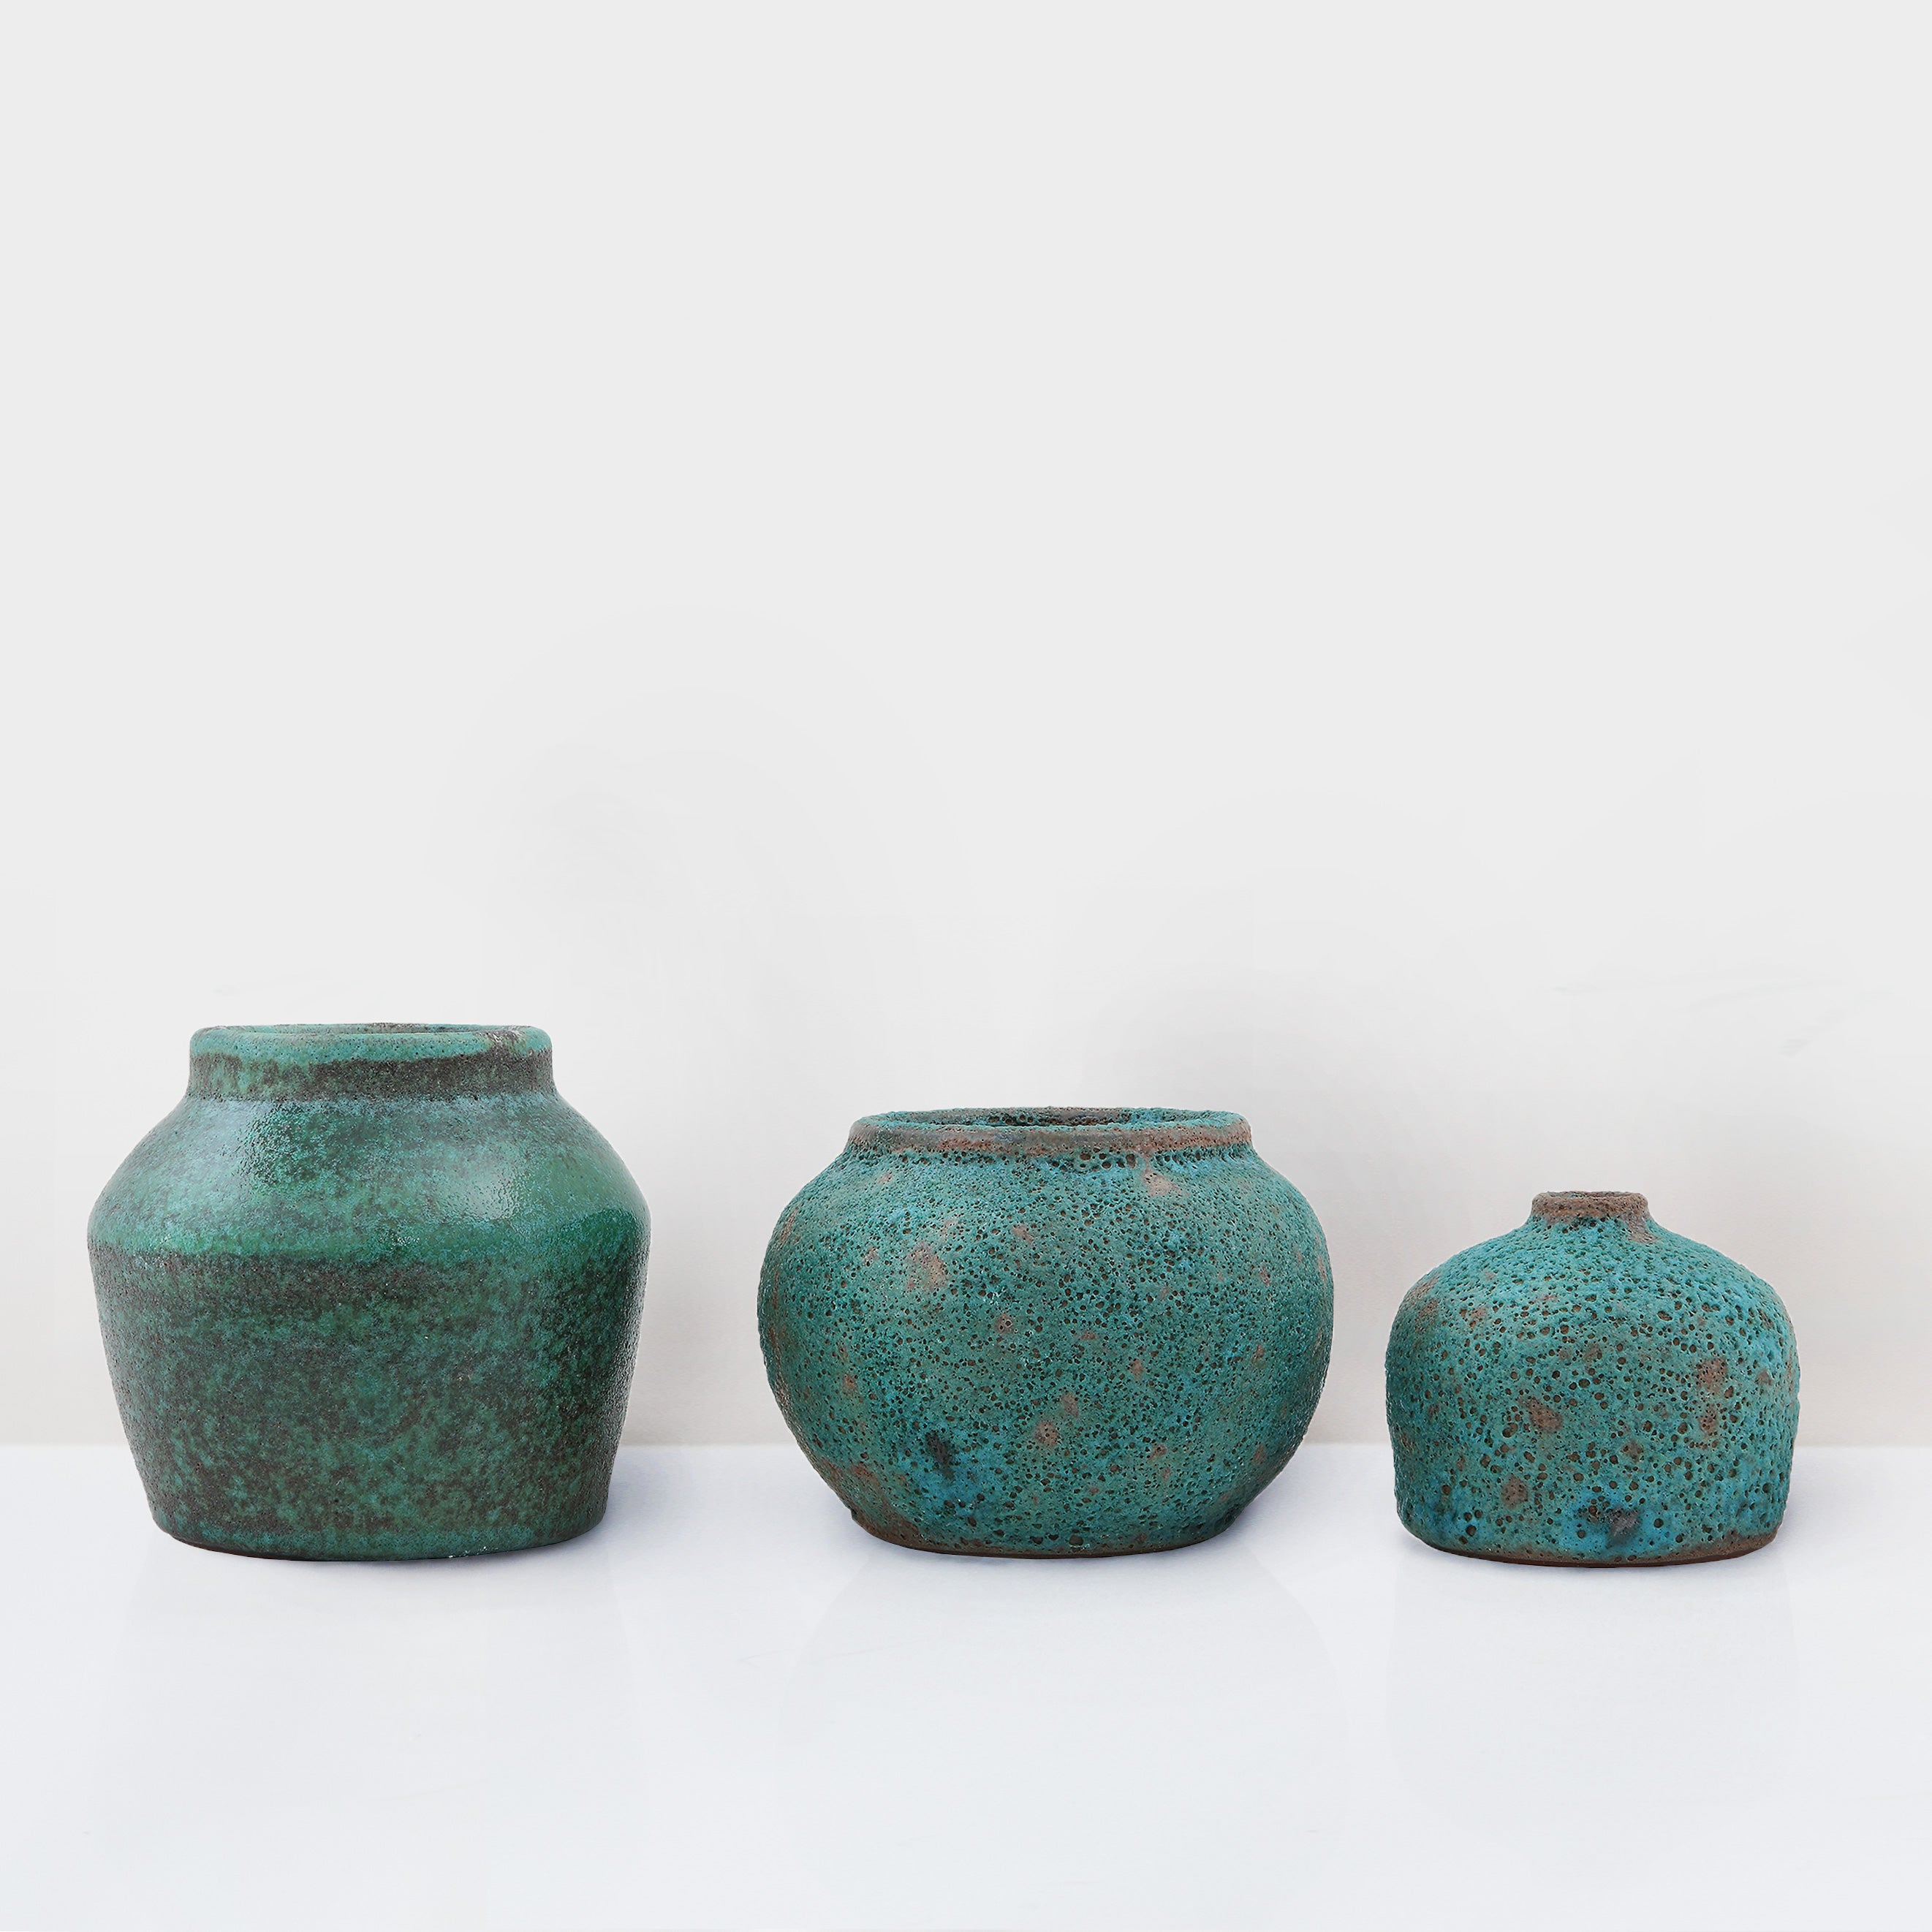 Set of three handcrafted terracotta decorative pots